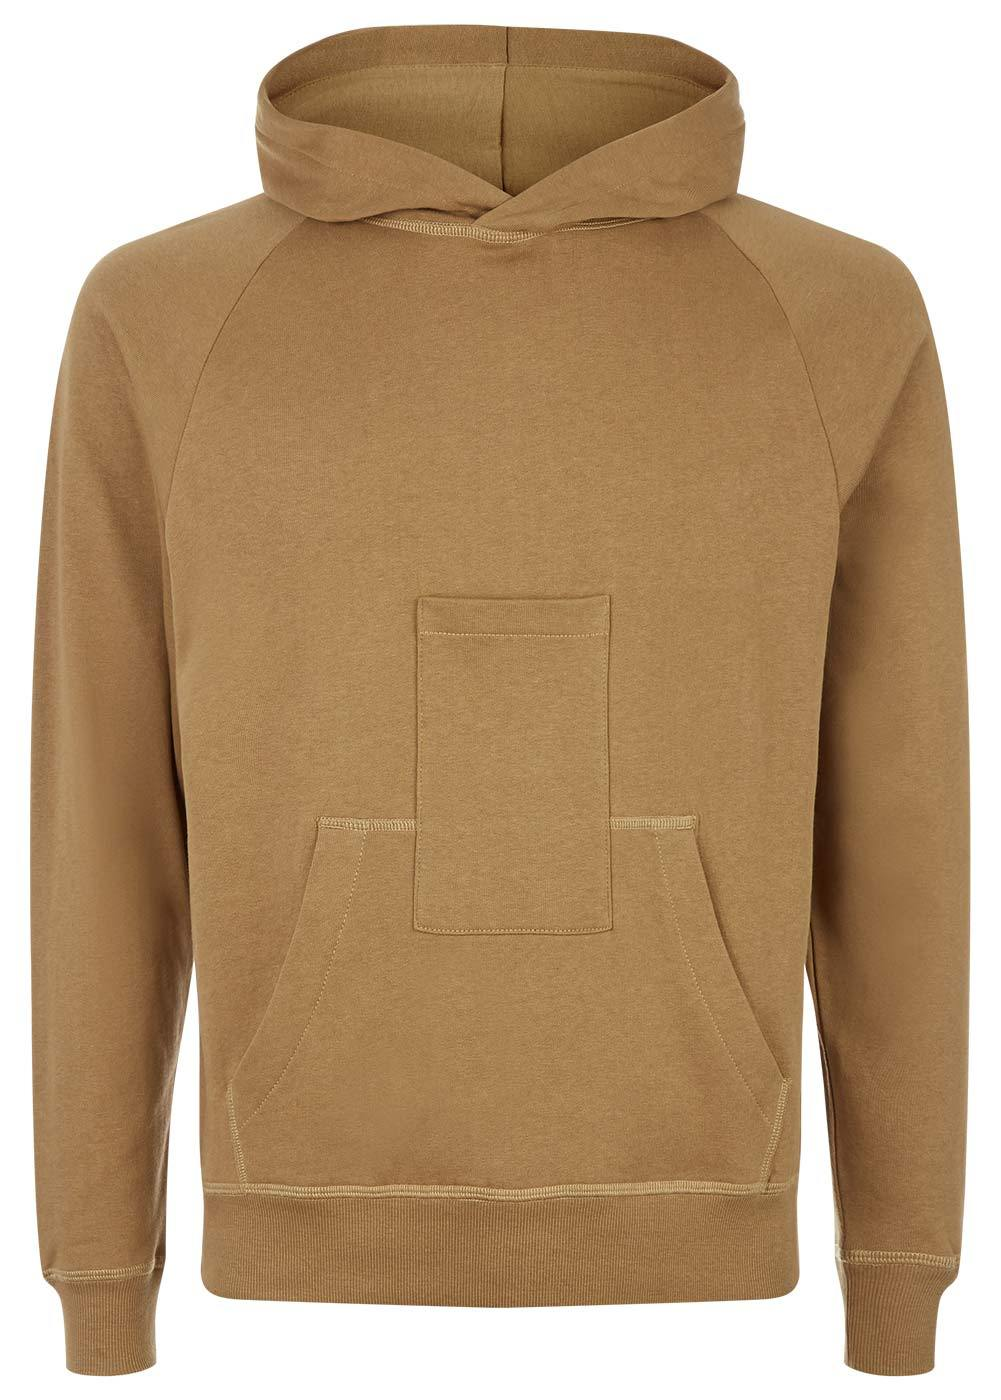 Boys Camel Hoodie With Phone Pocket - Front